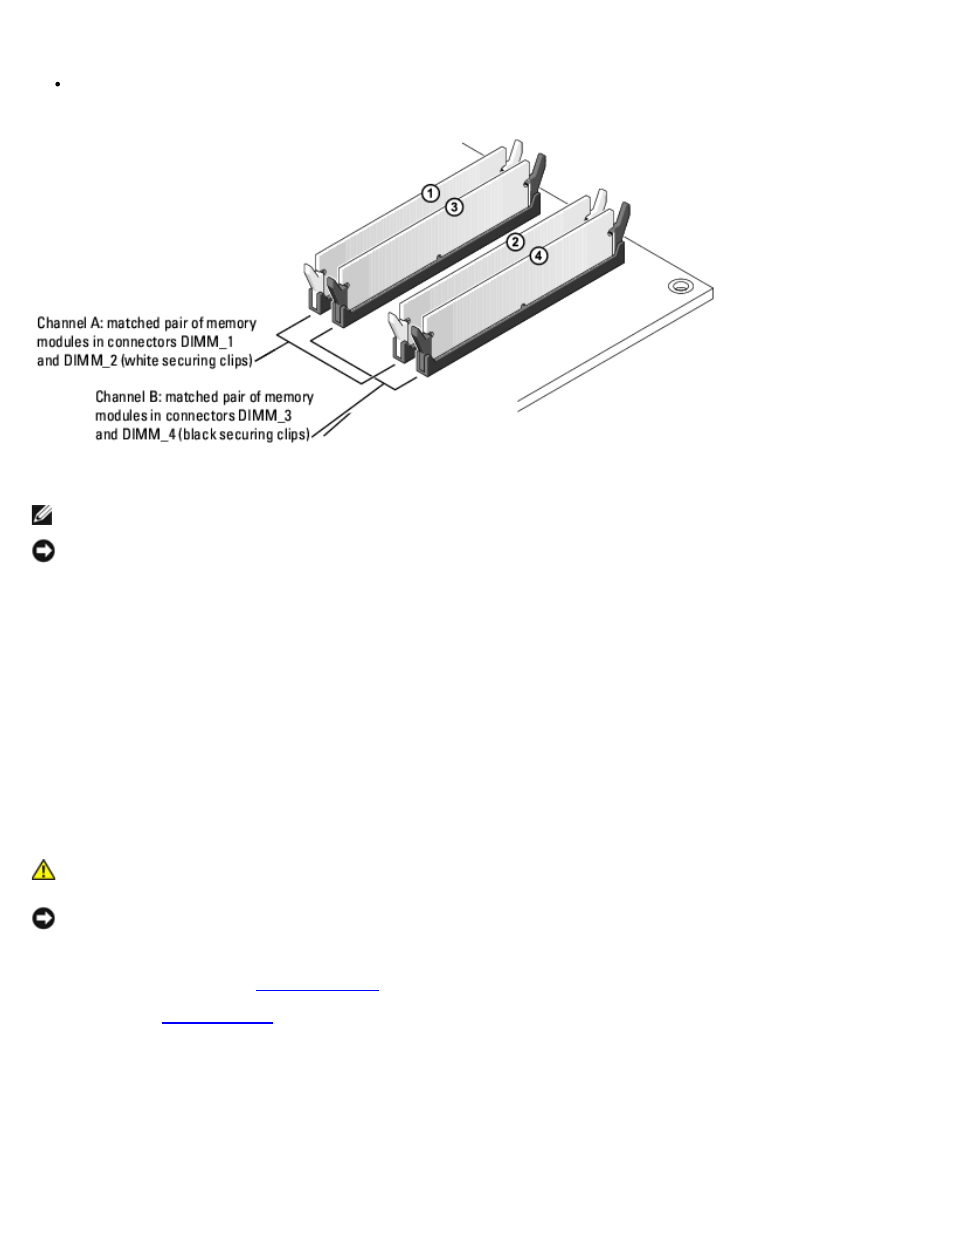 memory modules dell dimension 9150 xps 400 user manual page 33 rh manualsdir com Dell XPS 400 Ram XPS 400 Motherboard